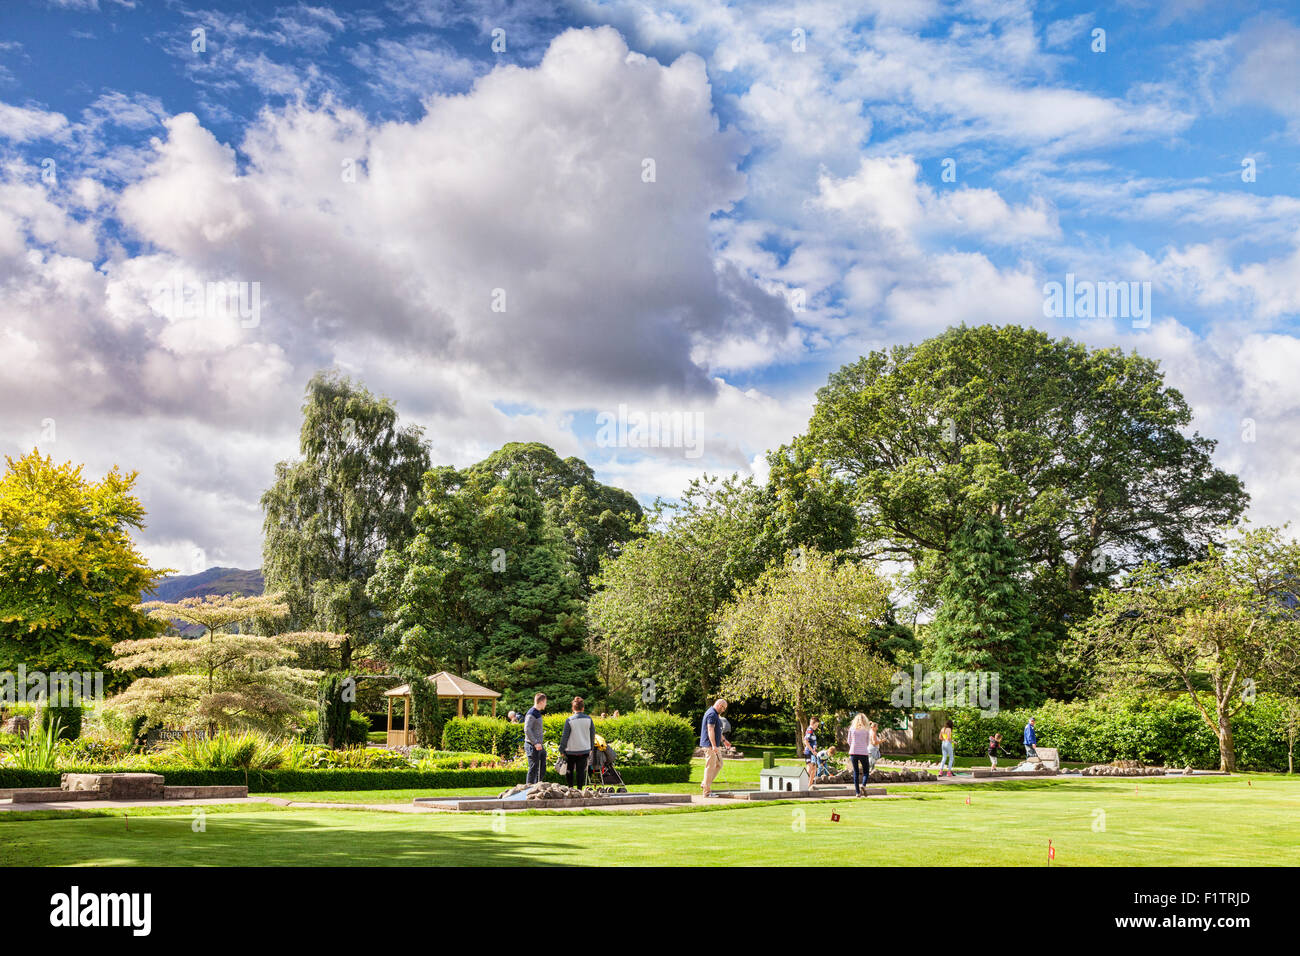 Tourists playing Crazy Golf in Hope Park, Keswick, Cumbria, England. - Stock Image